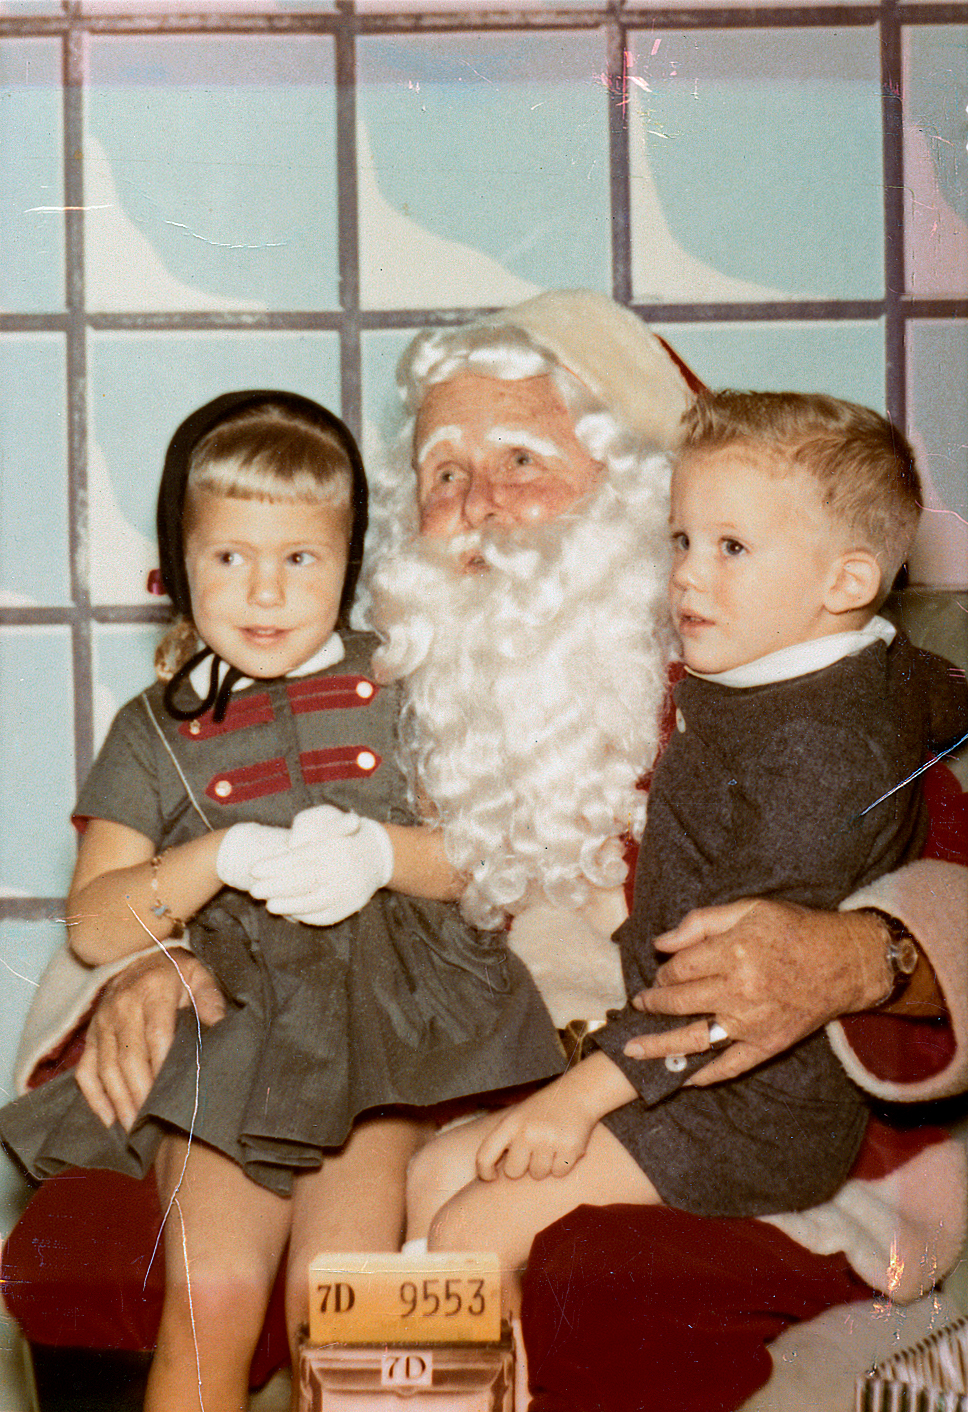 Way back when we believed in Santa Claus.